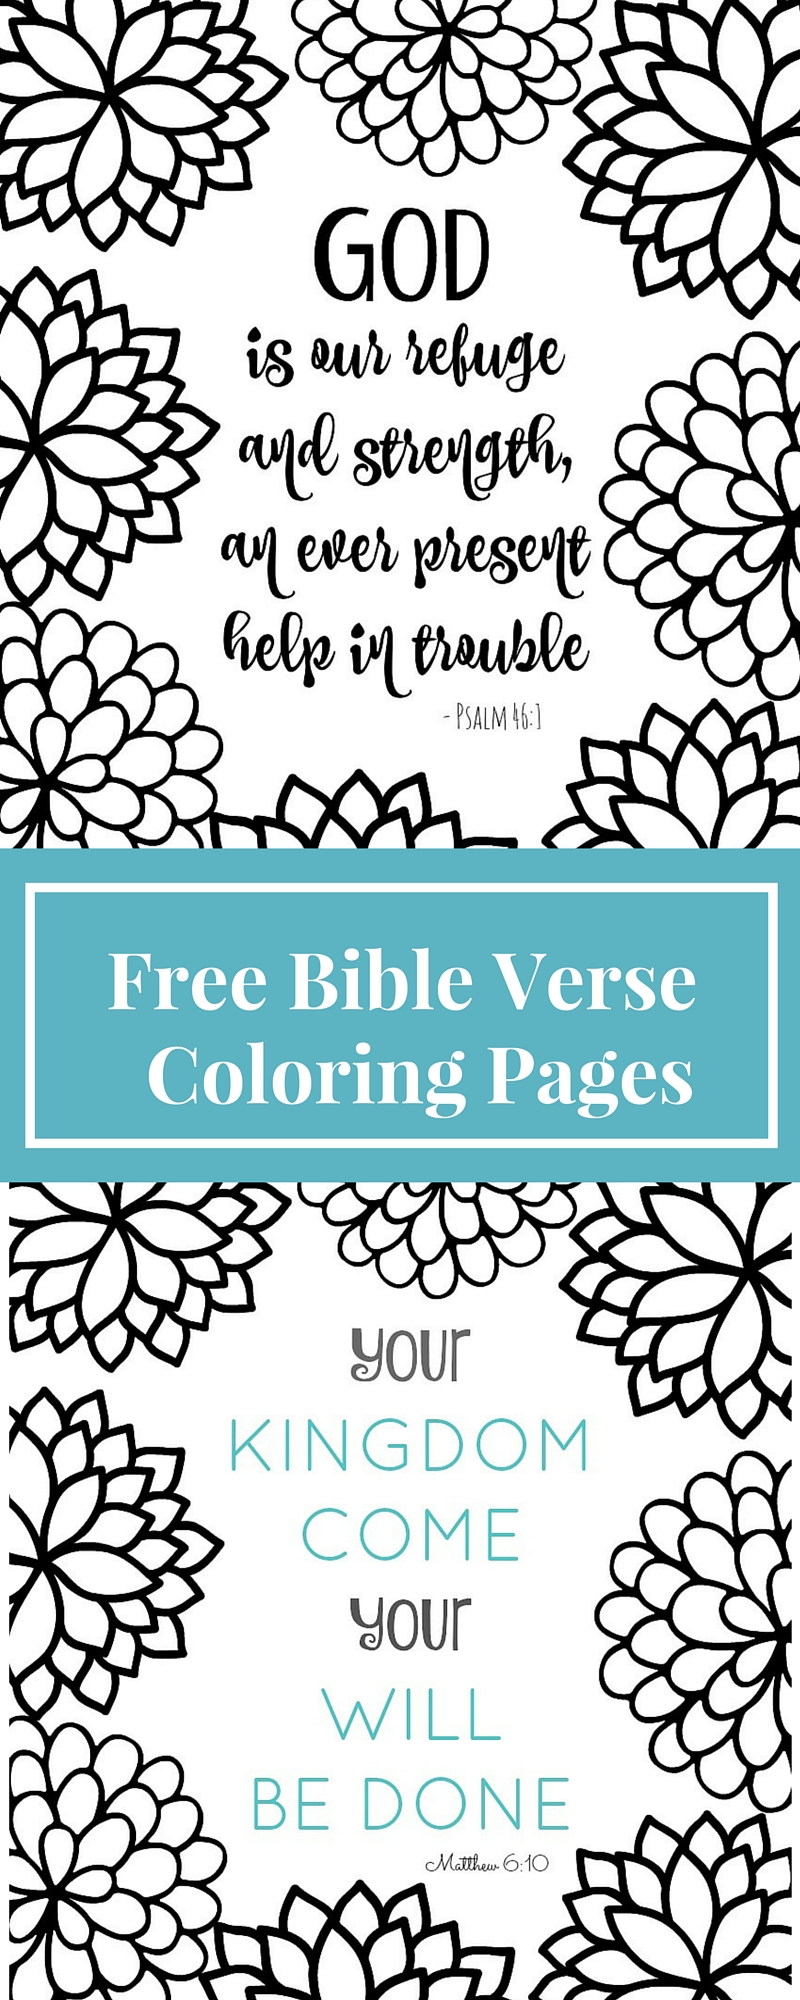 Coloring pages with bible verses - Bible Verse Coloring Pages